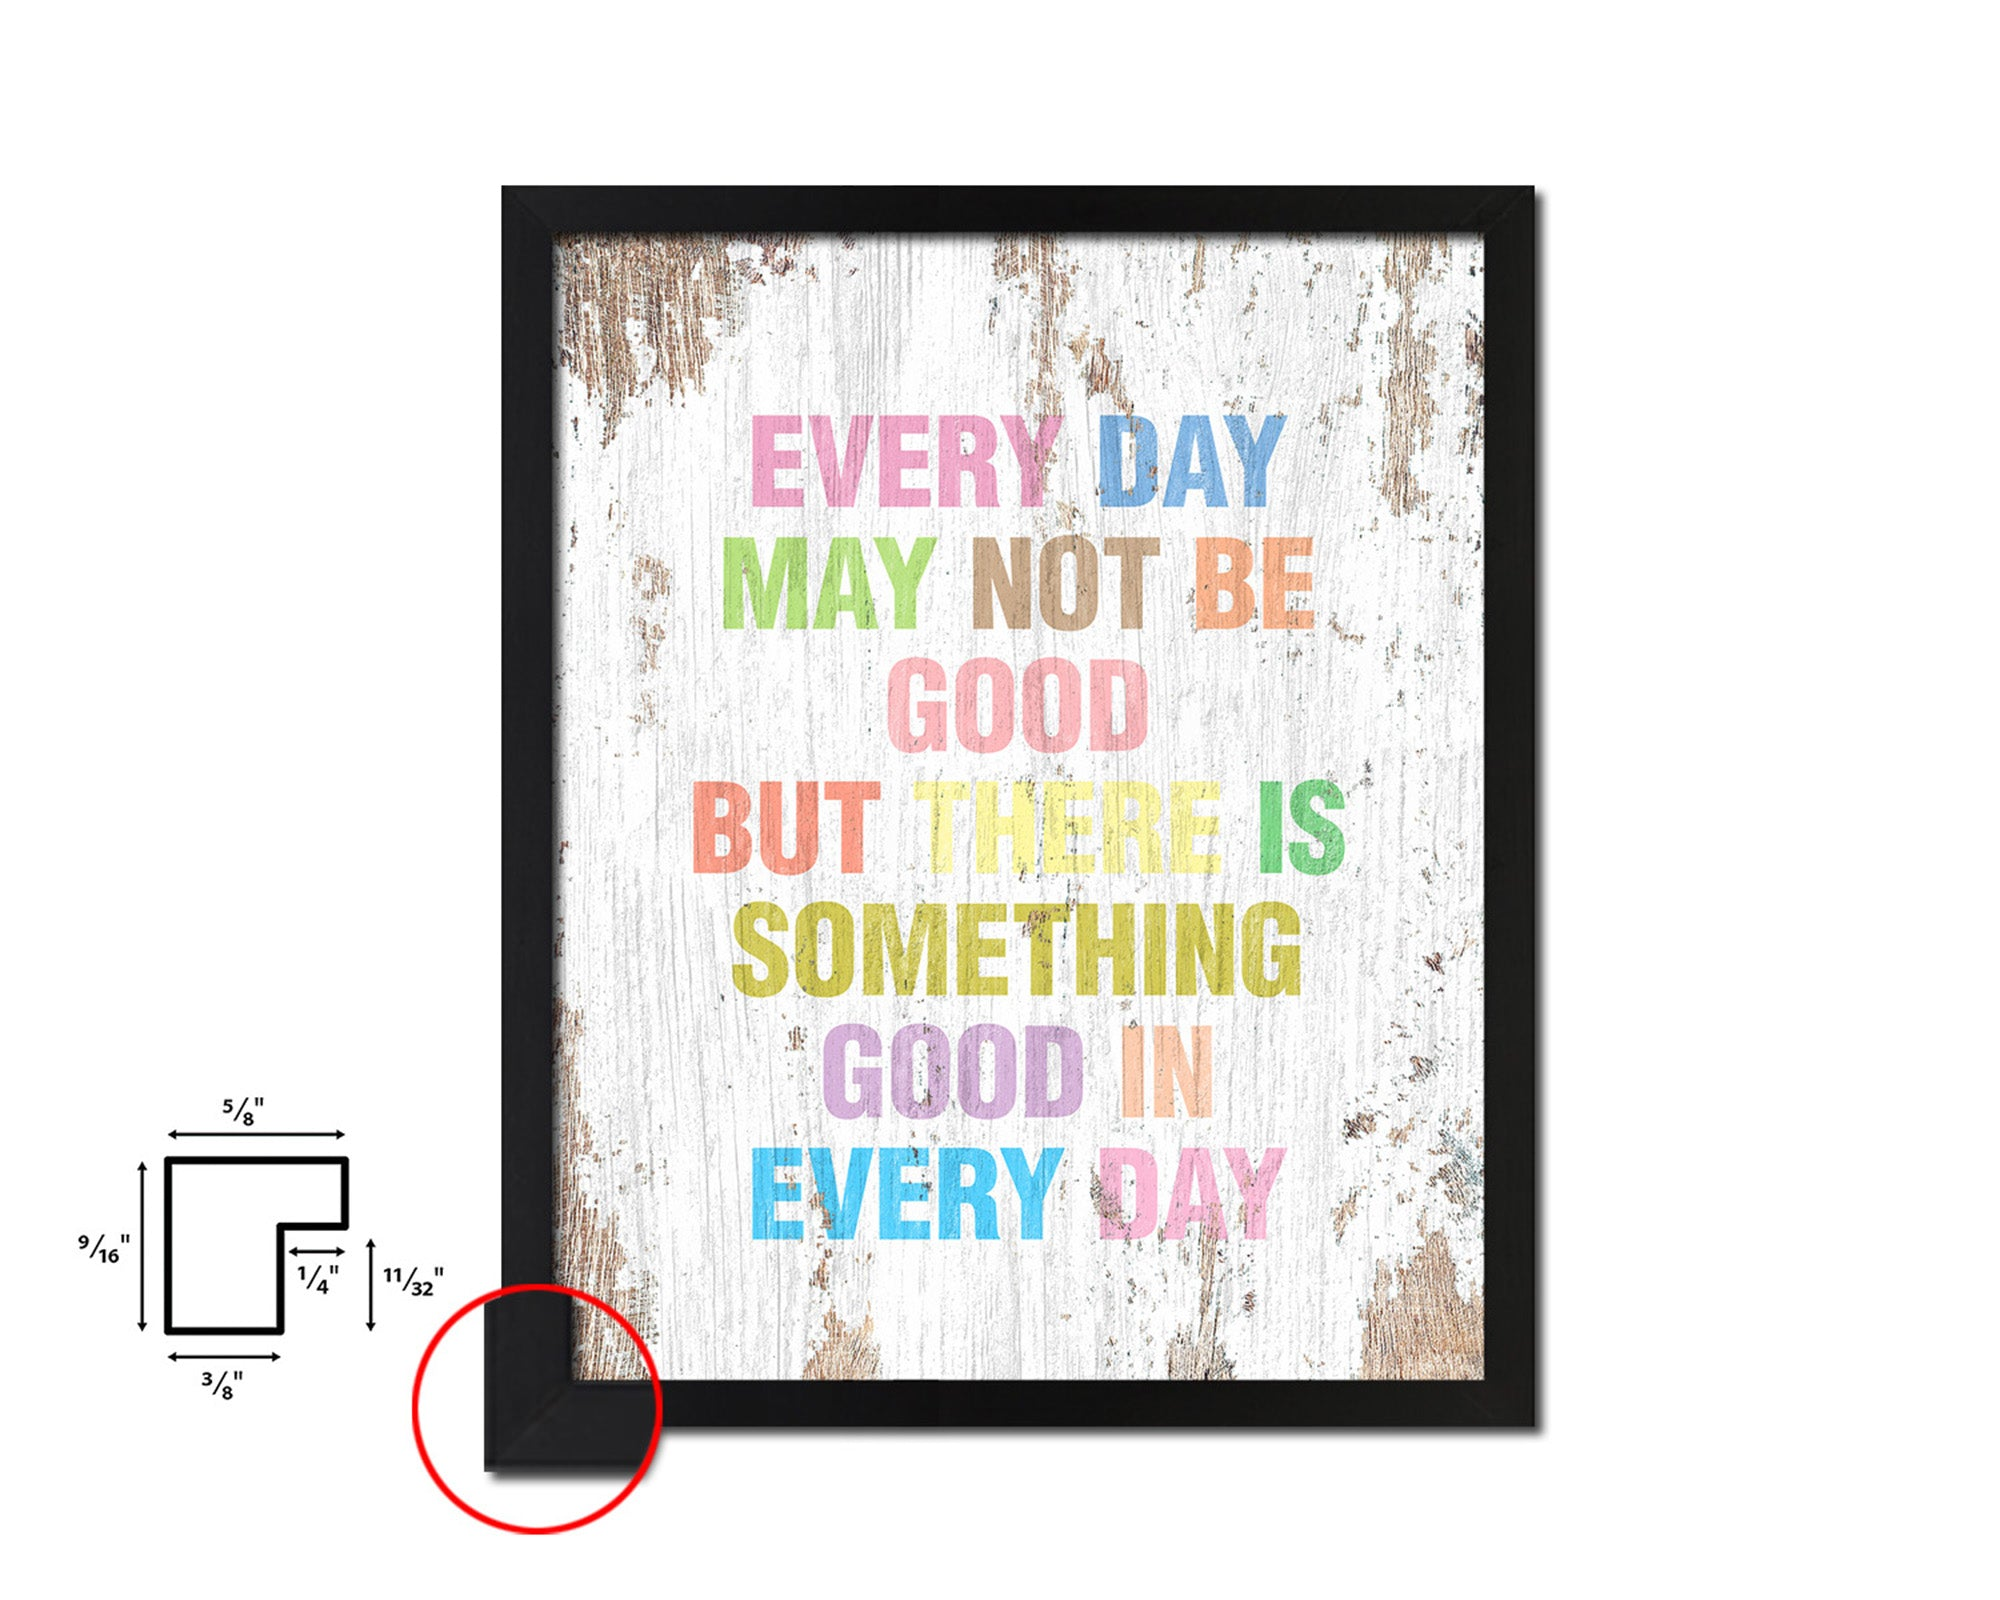 Every day may not be good Quote Wood Framed Print Home Decor Wall Art Gifts